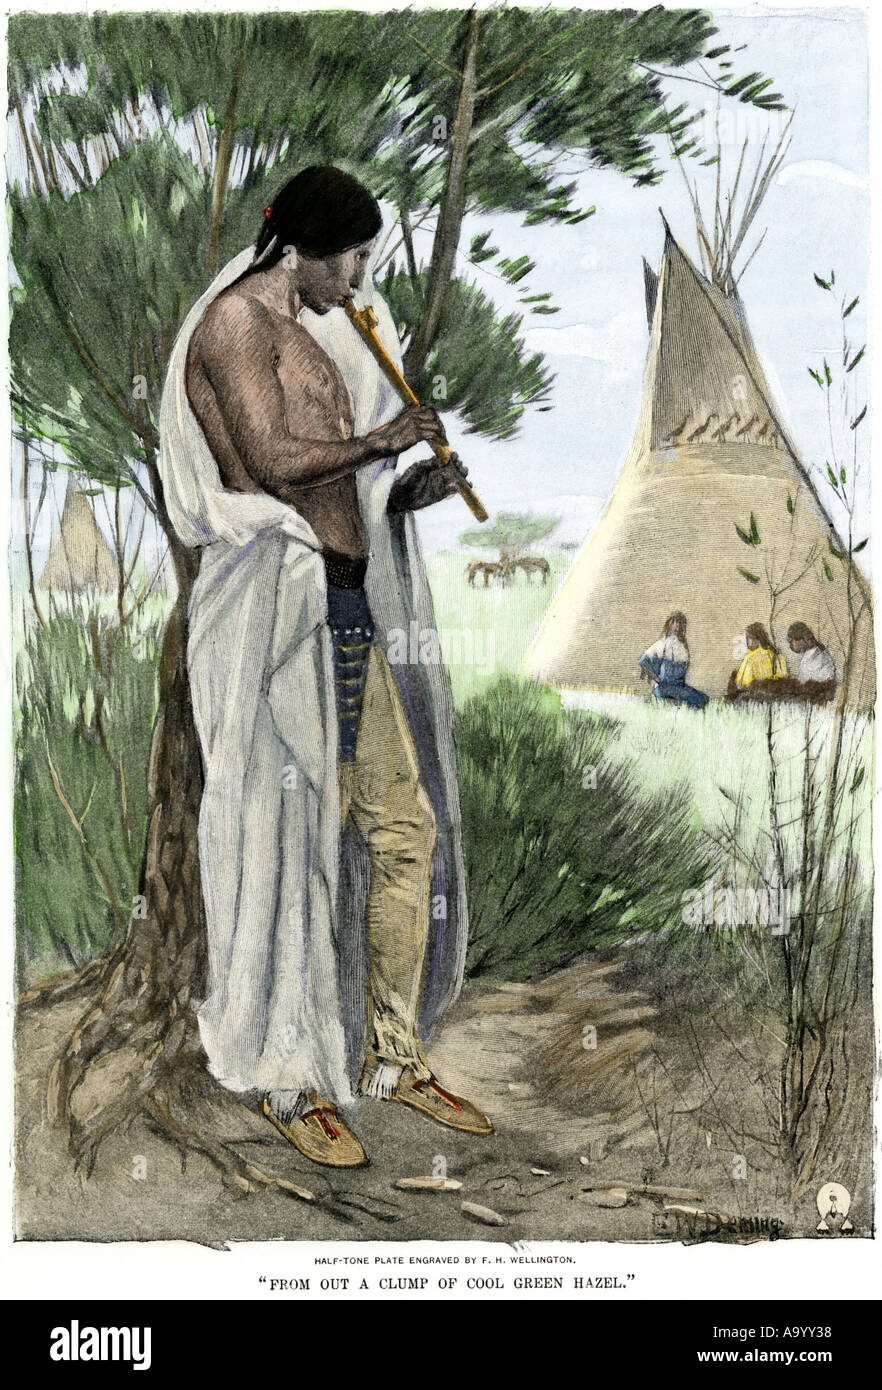 Native American playing a flute to young women near a tepee. Hand-colored halftone of an illustration - Stock Image